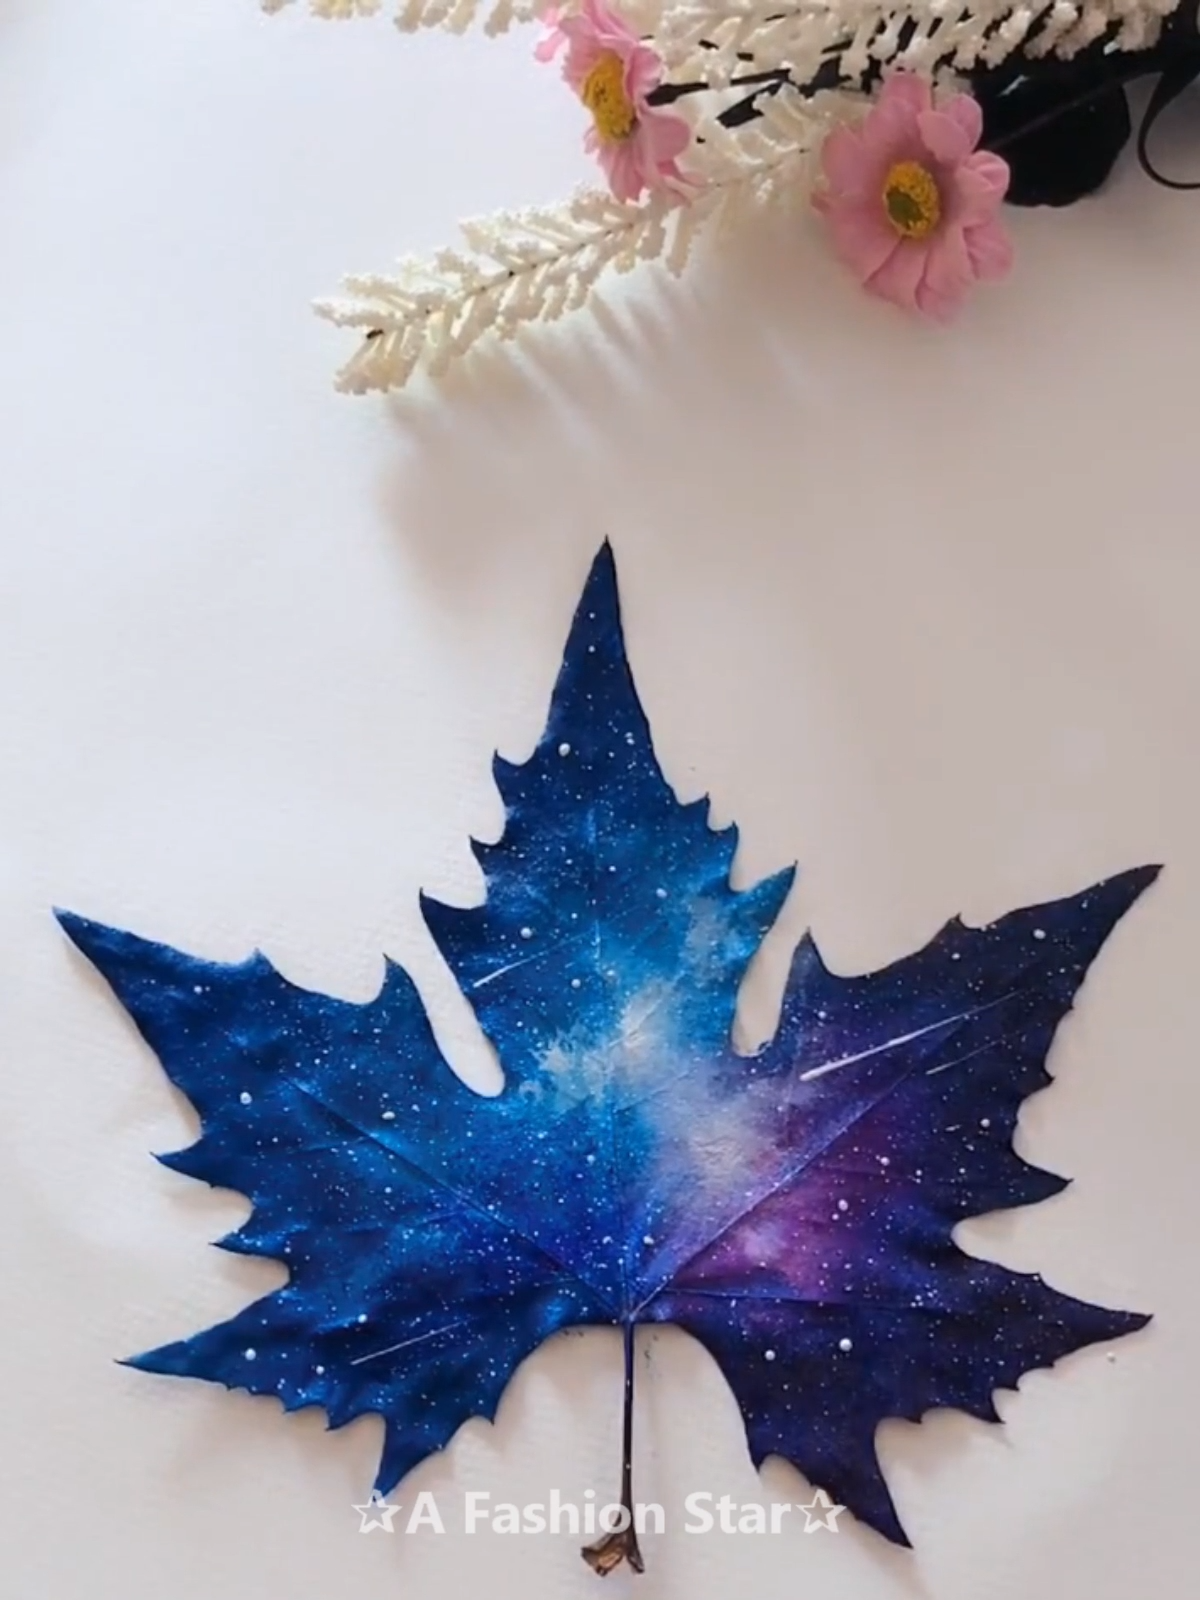 7 Easy Incredible Art On Leaves Leaf Painting Ideas For Home Decor Video Painted Leaves Painting Crafts Art Painting